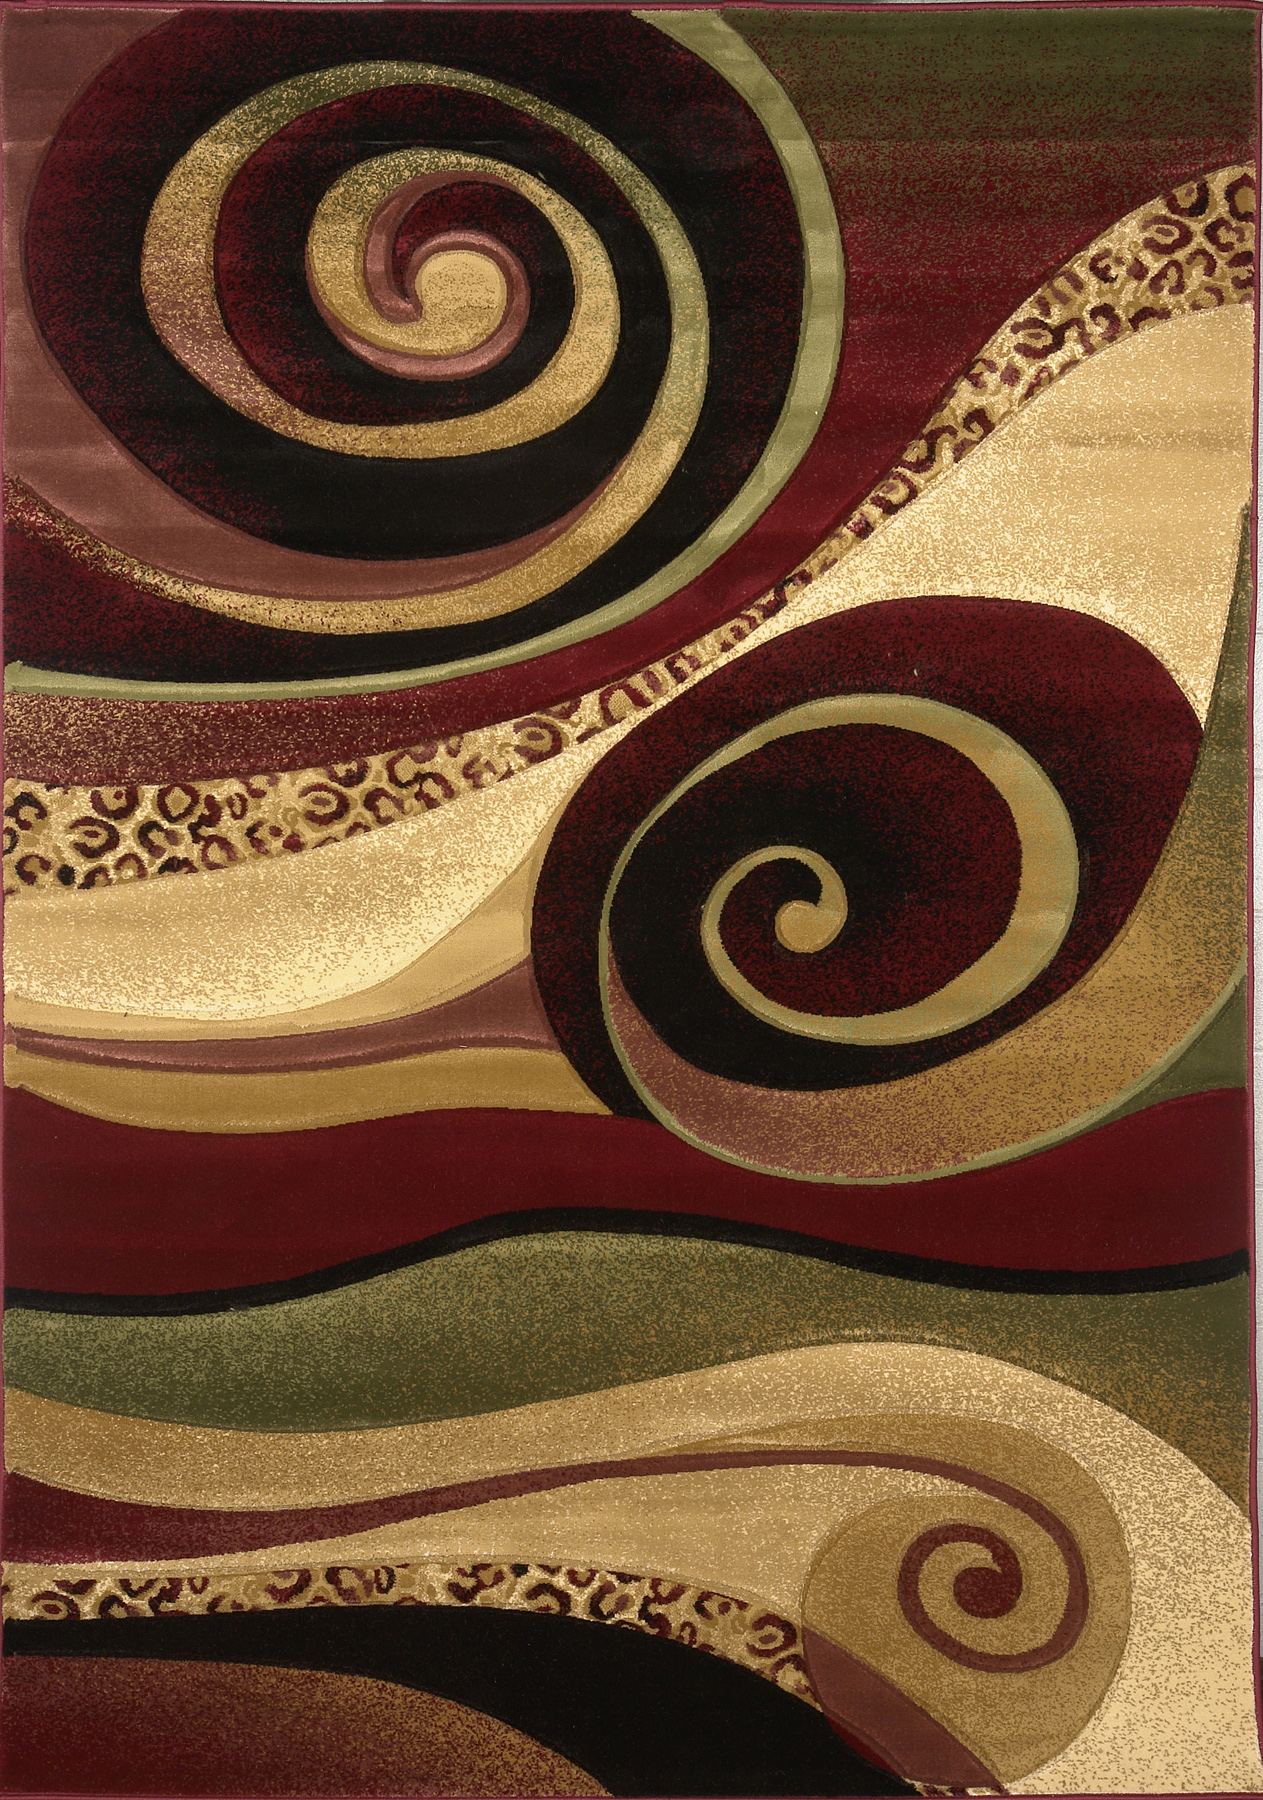 Asian Carpet Details About Multicolor Modern Area Rug Contemporary Swirls Abstract Chinese Art Asian Carpet